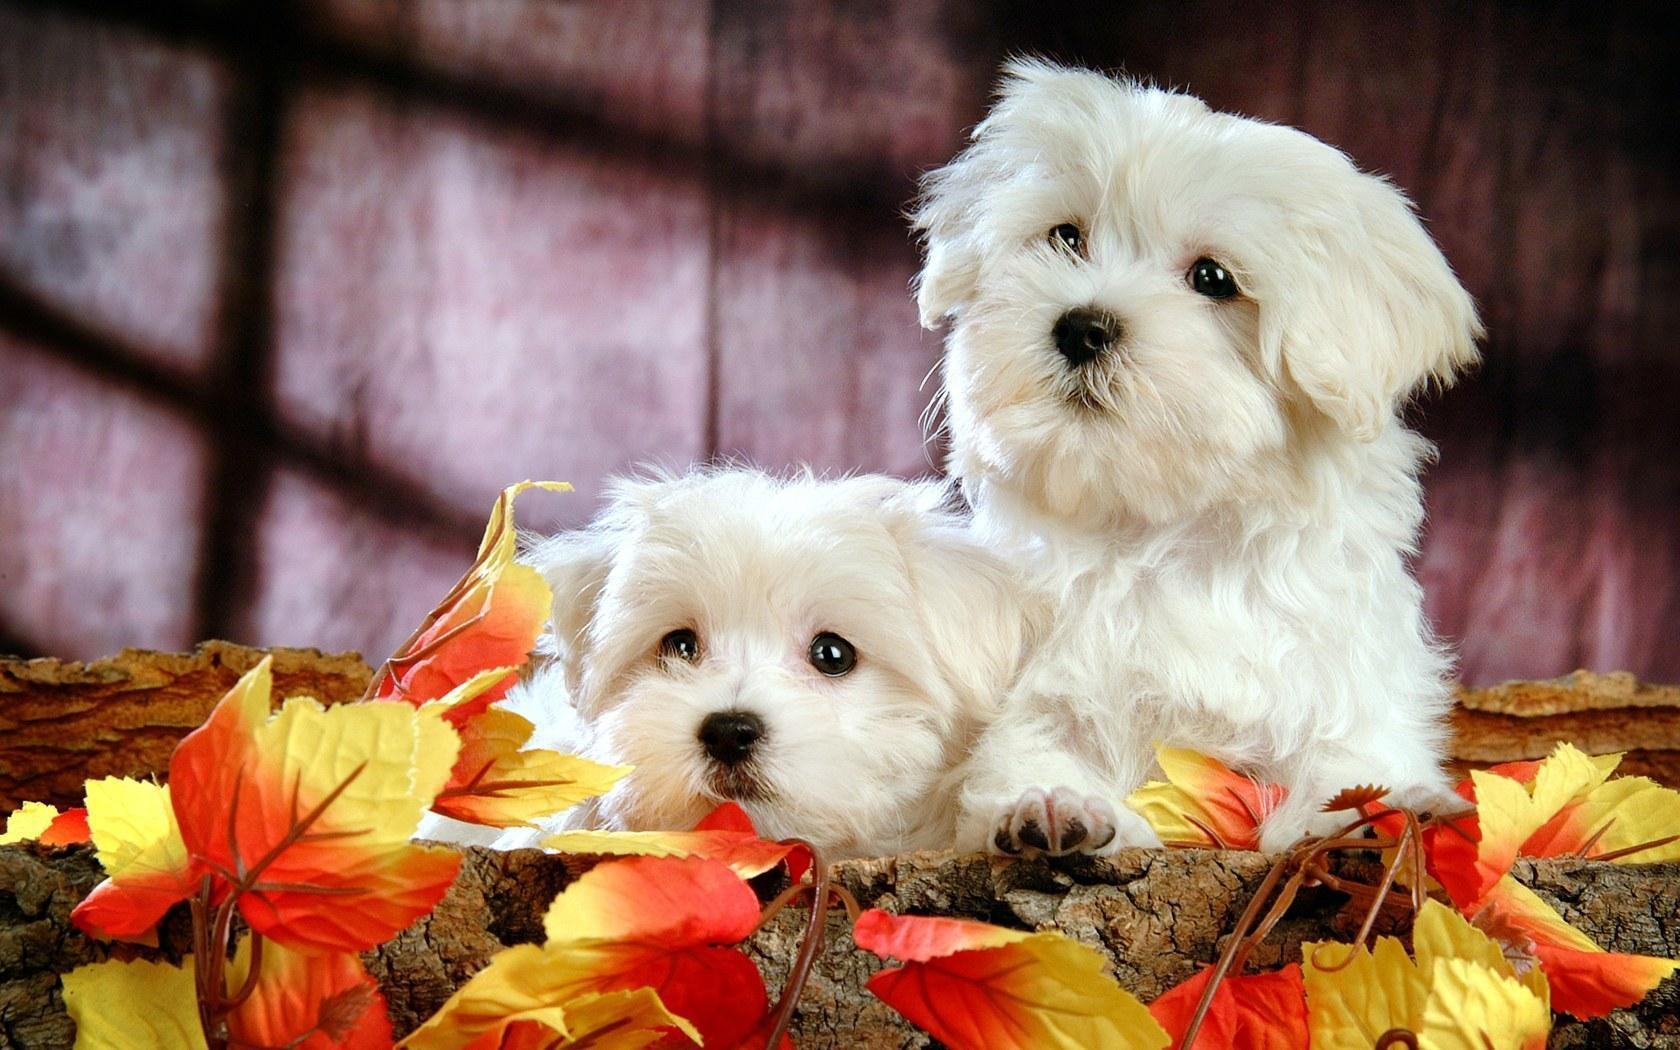 HD wallpapers Cute White Puppy HD Wallpapers White Puppies Wallpapers